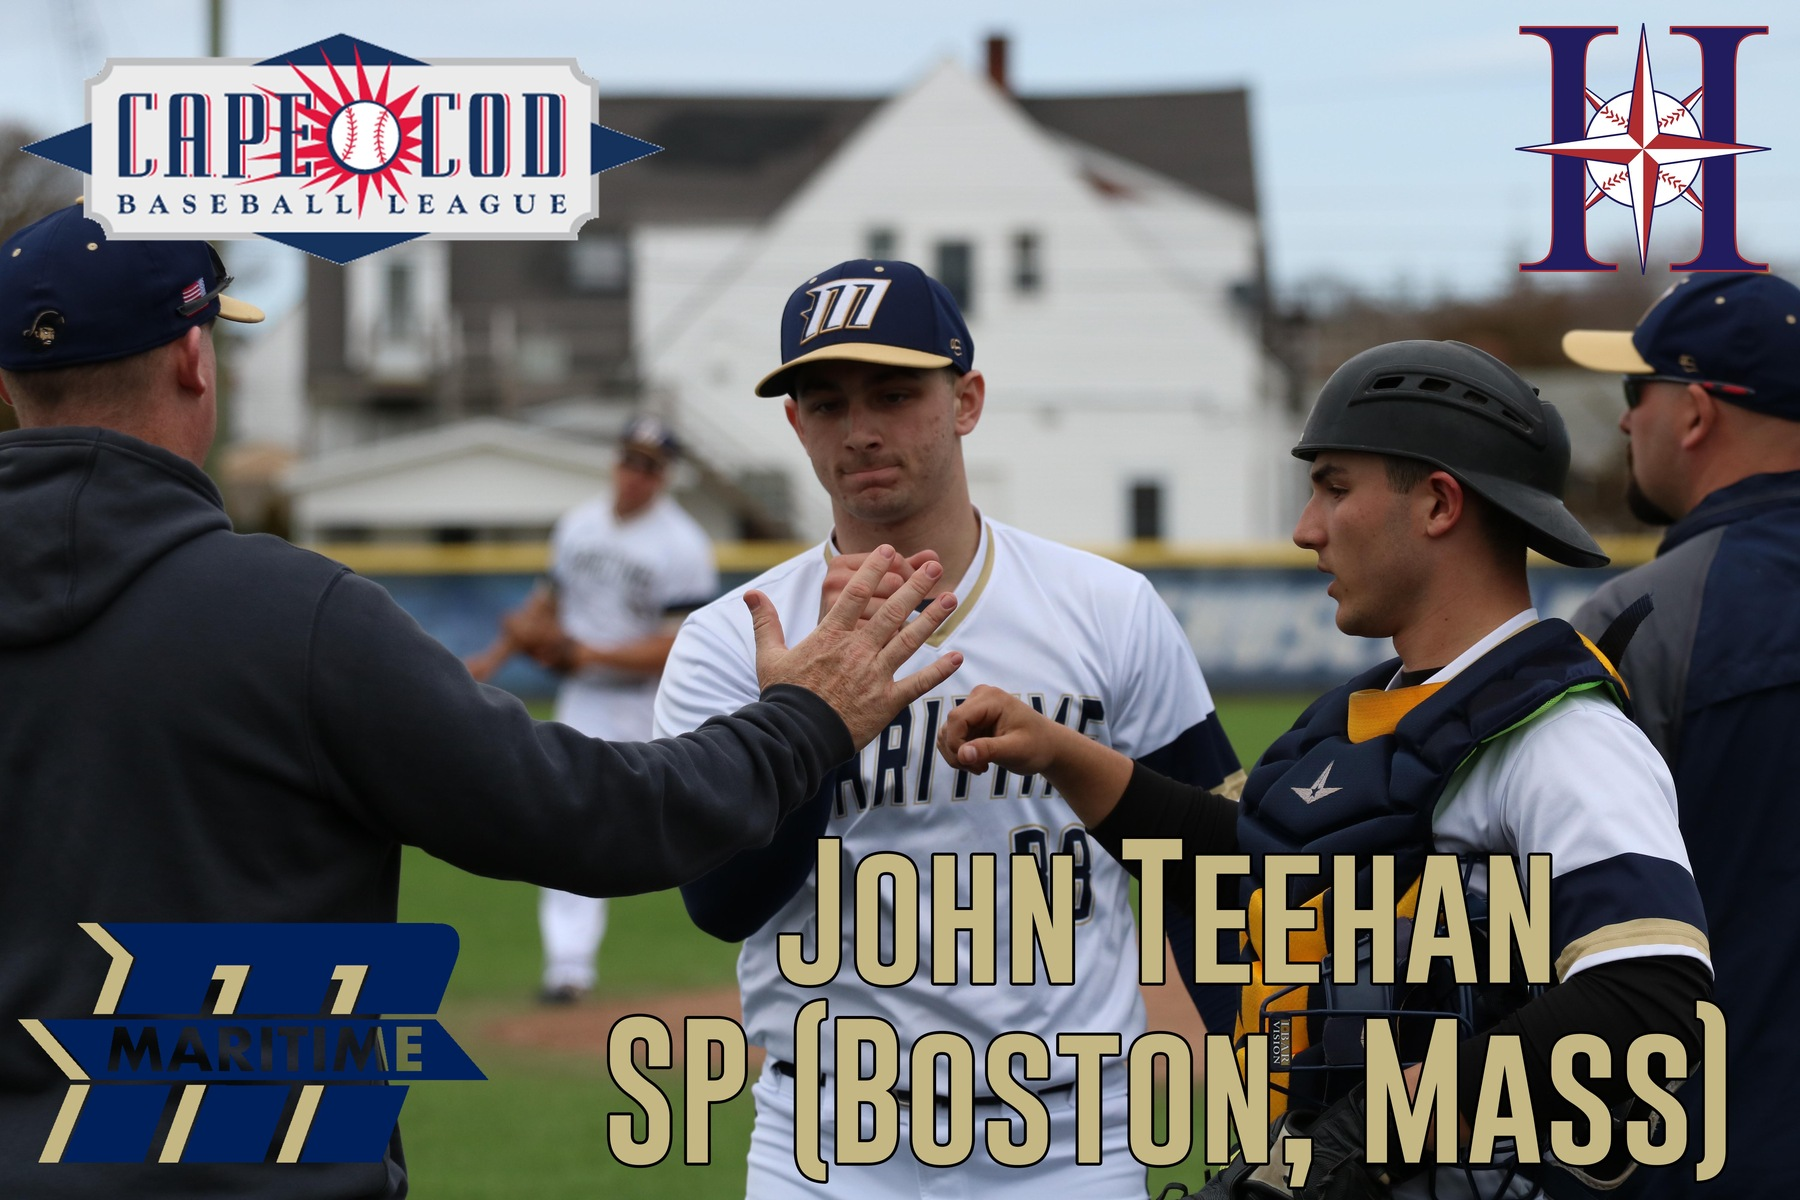 Teehan Signs with Harwich Mariners of Cape League